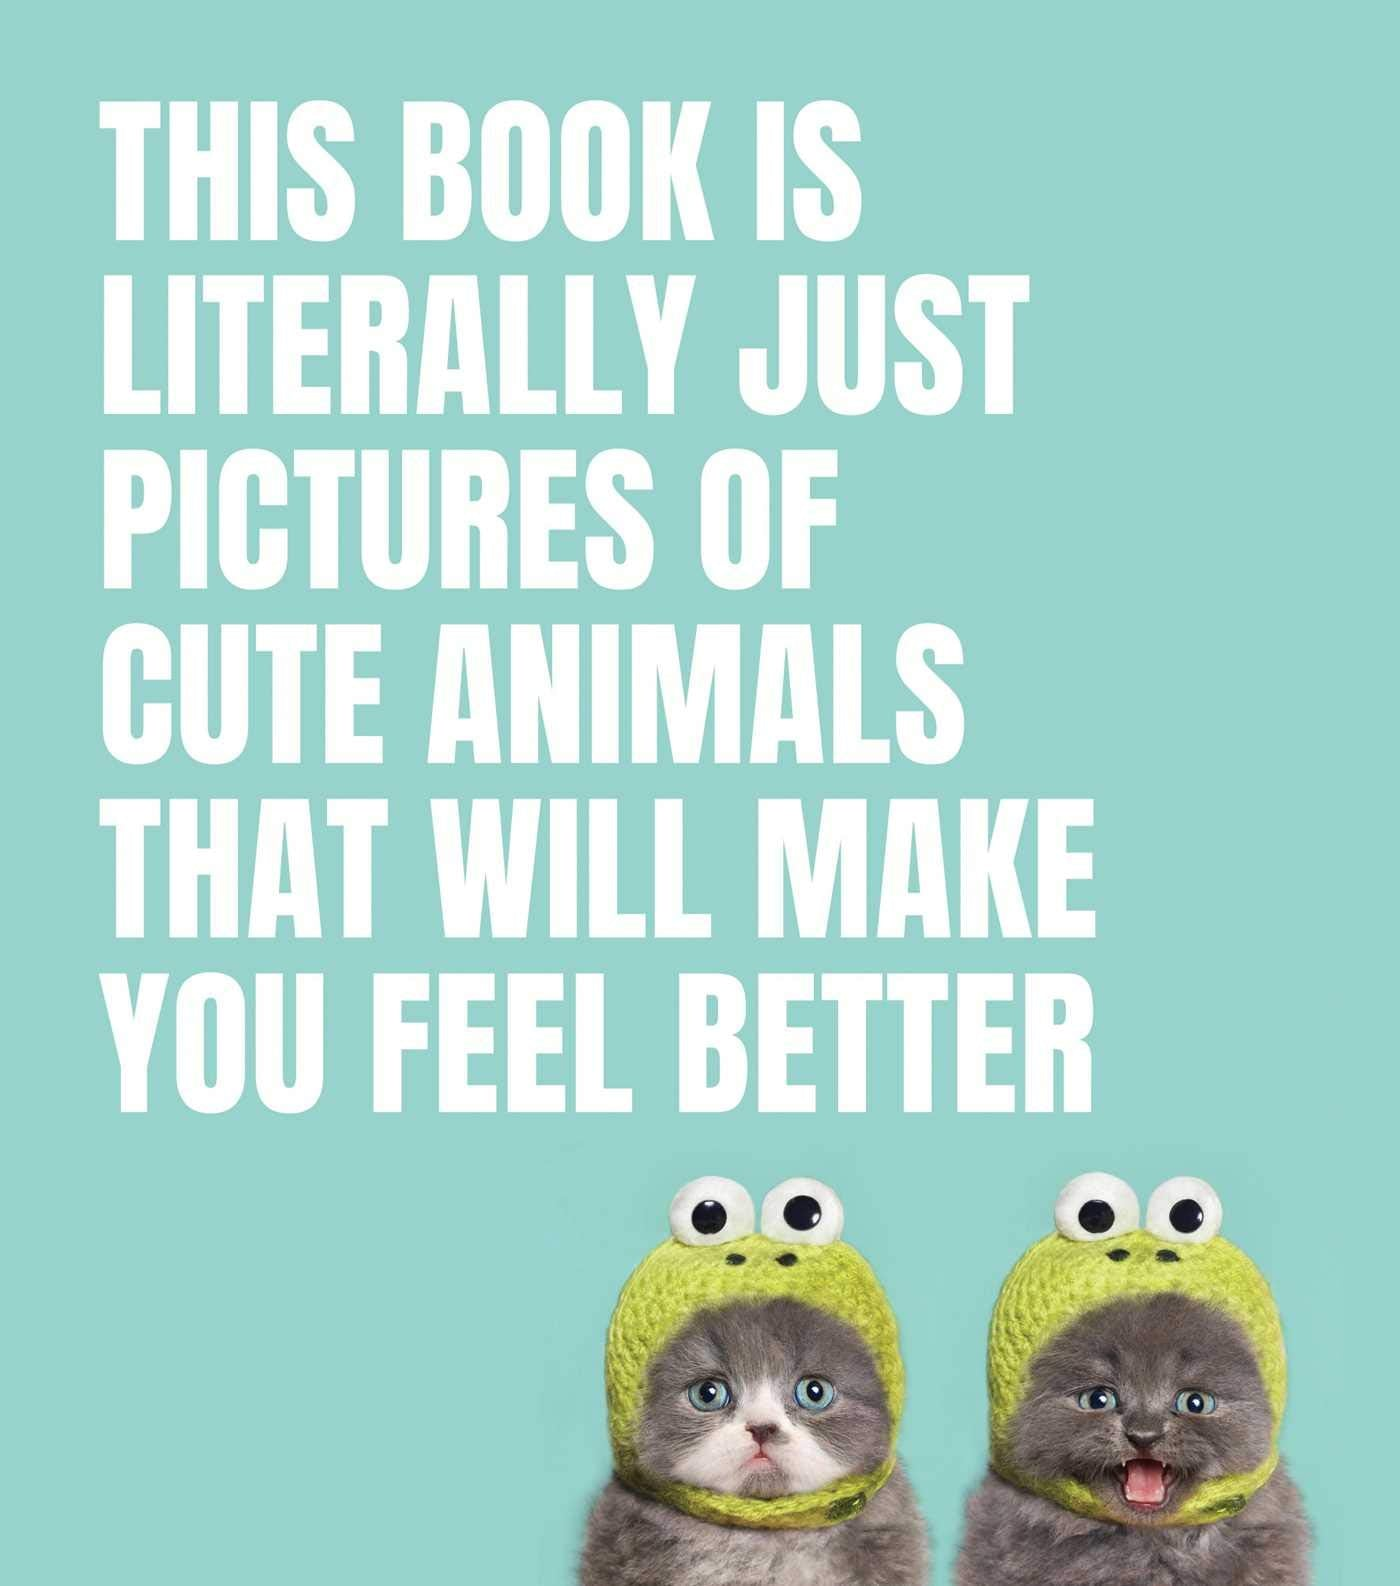 This Book Is Literally Just Pictures of Cute Animals Book